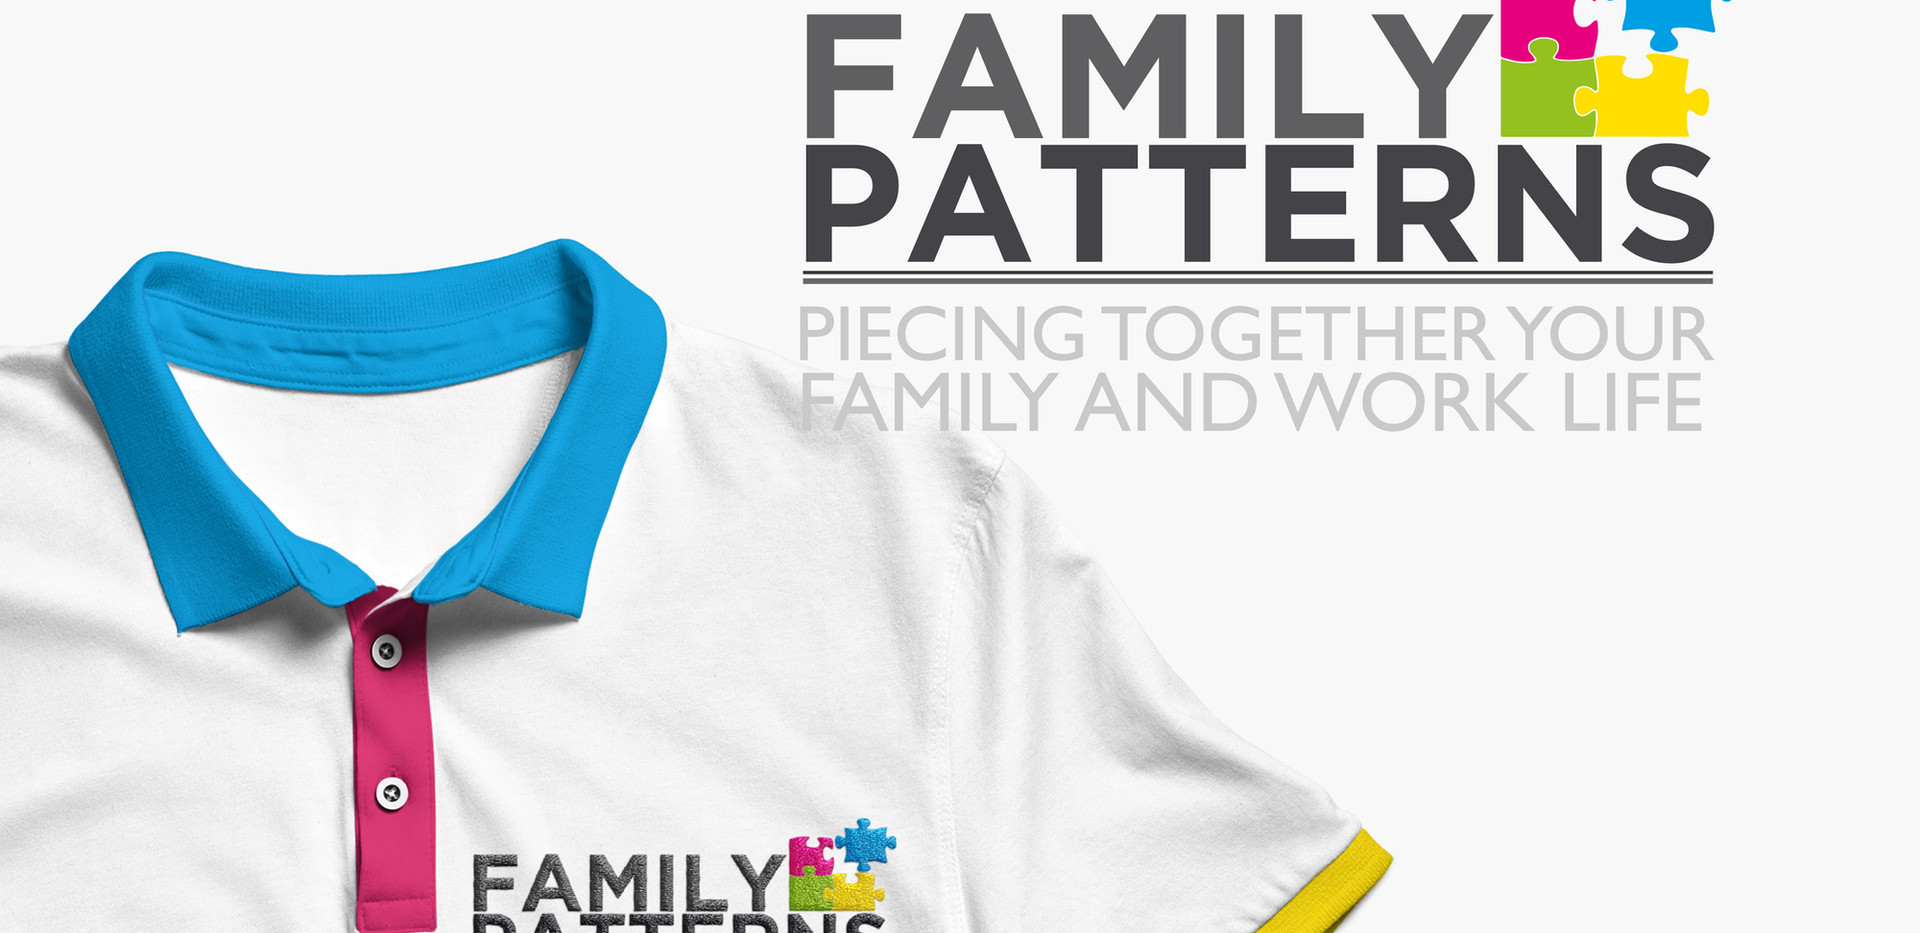 Family Patterns Shirt.jpg